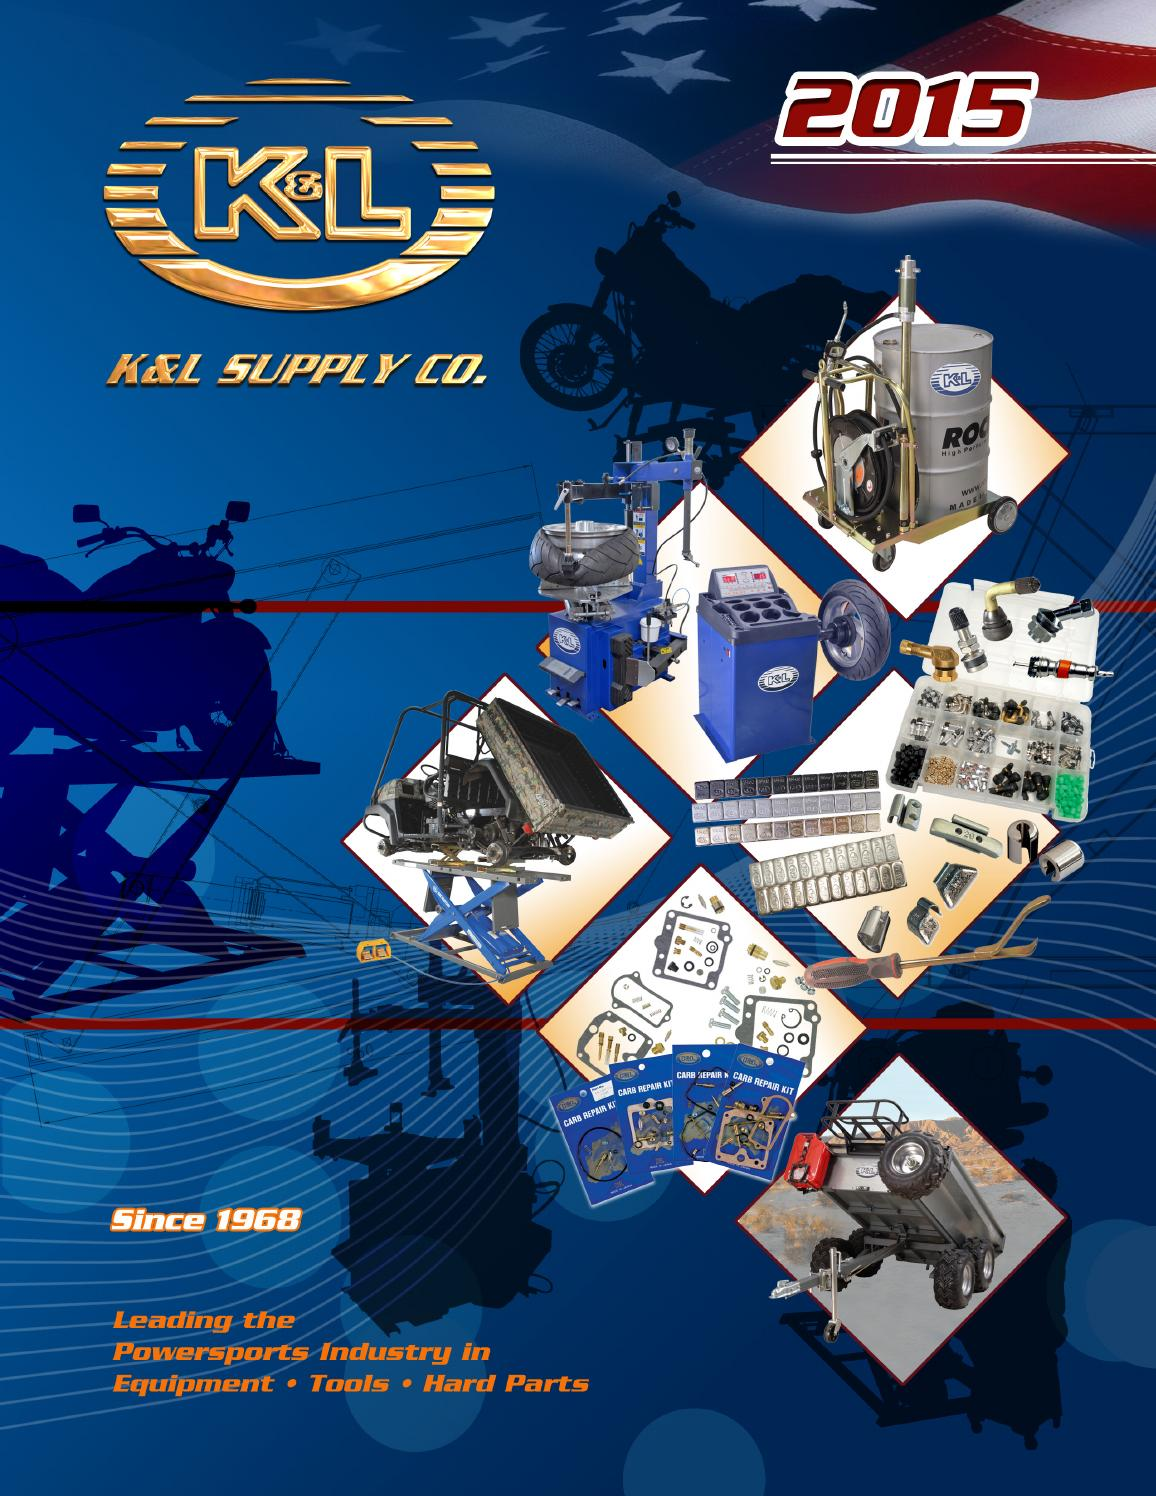 2015 Kl Catalog By Klsupply Issuu 1995 Diagram Wiring Kawasaki Zx750j